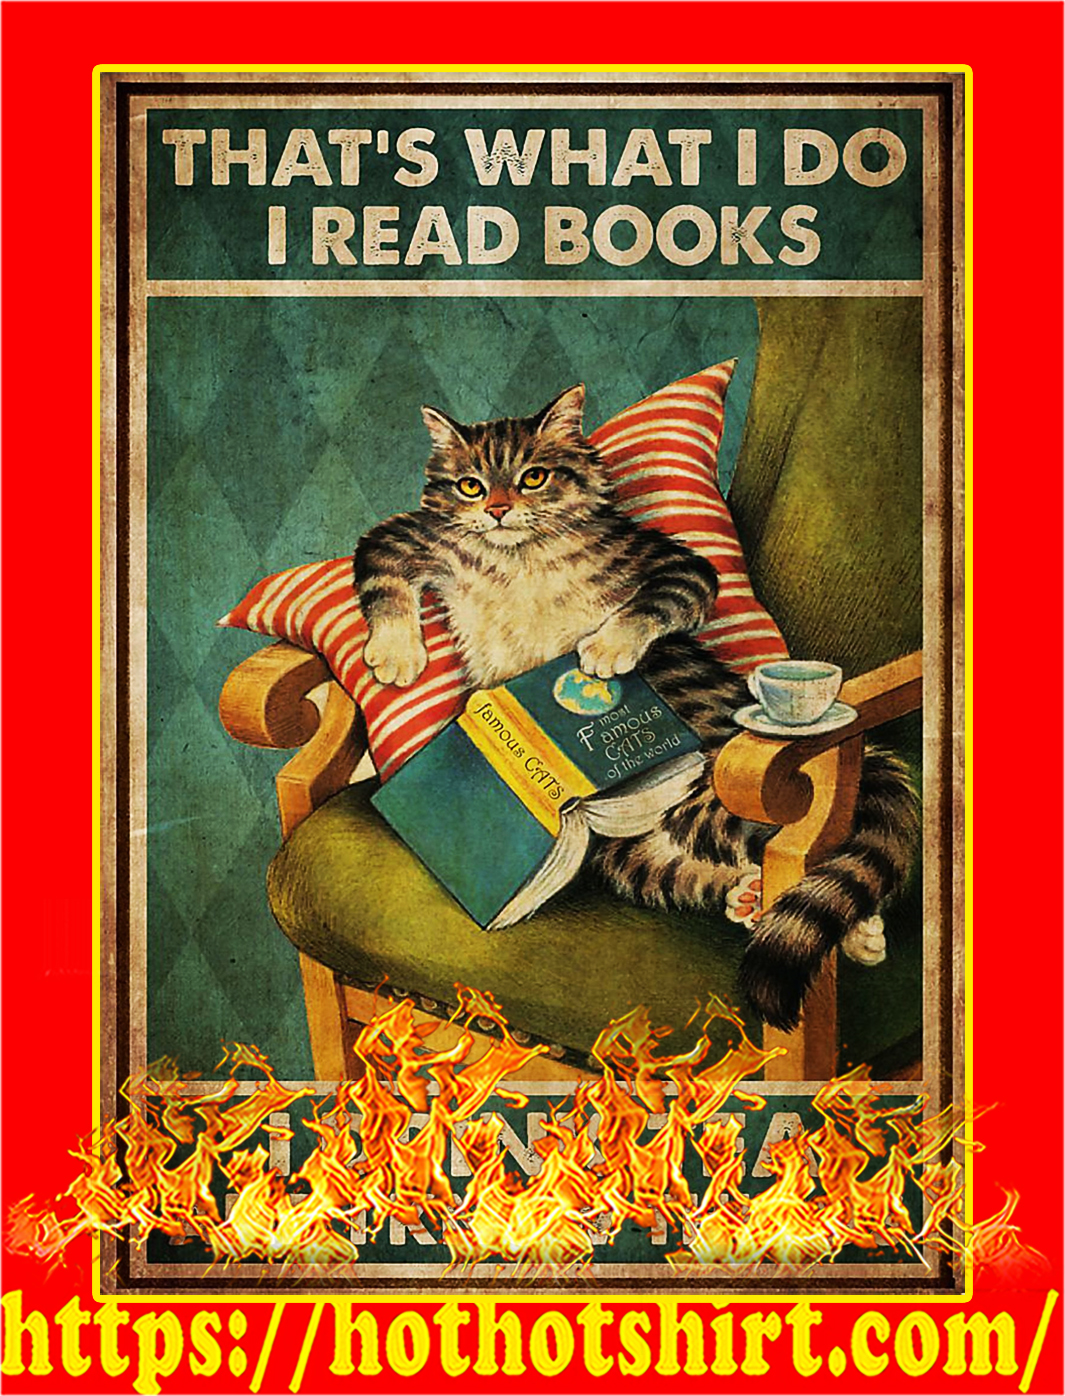 Cat That's what i do i read books i drink tea poster - A3